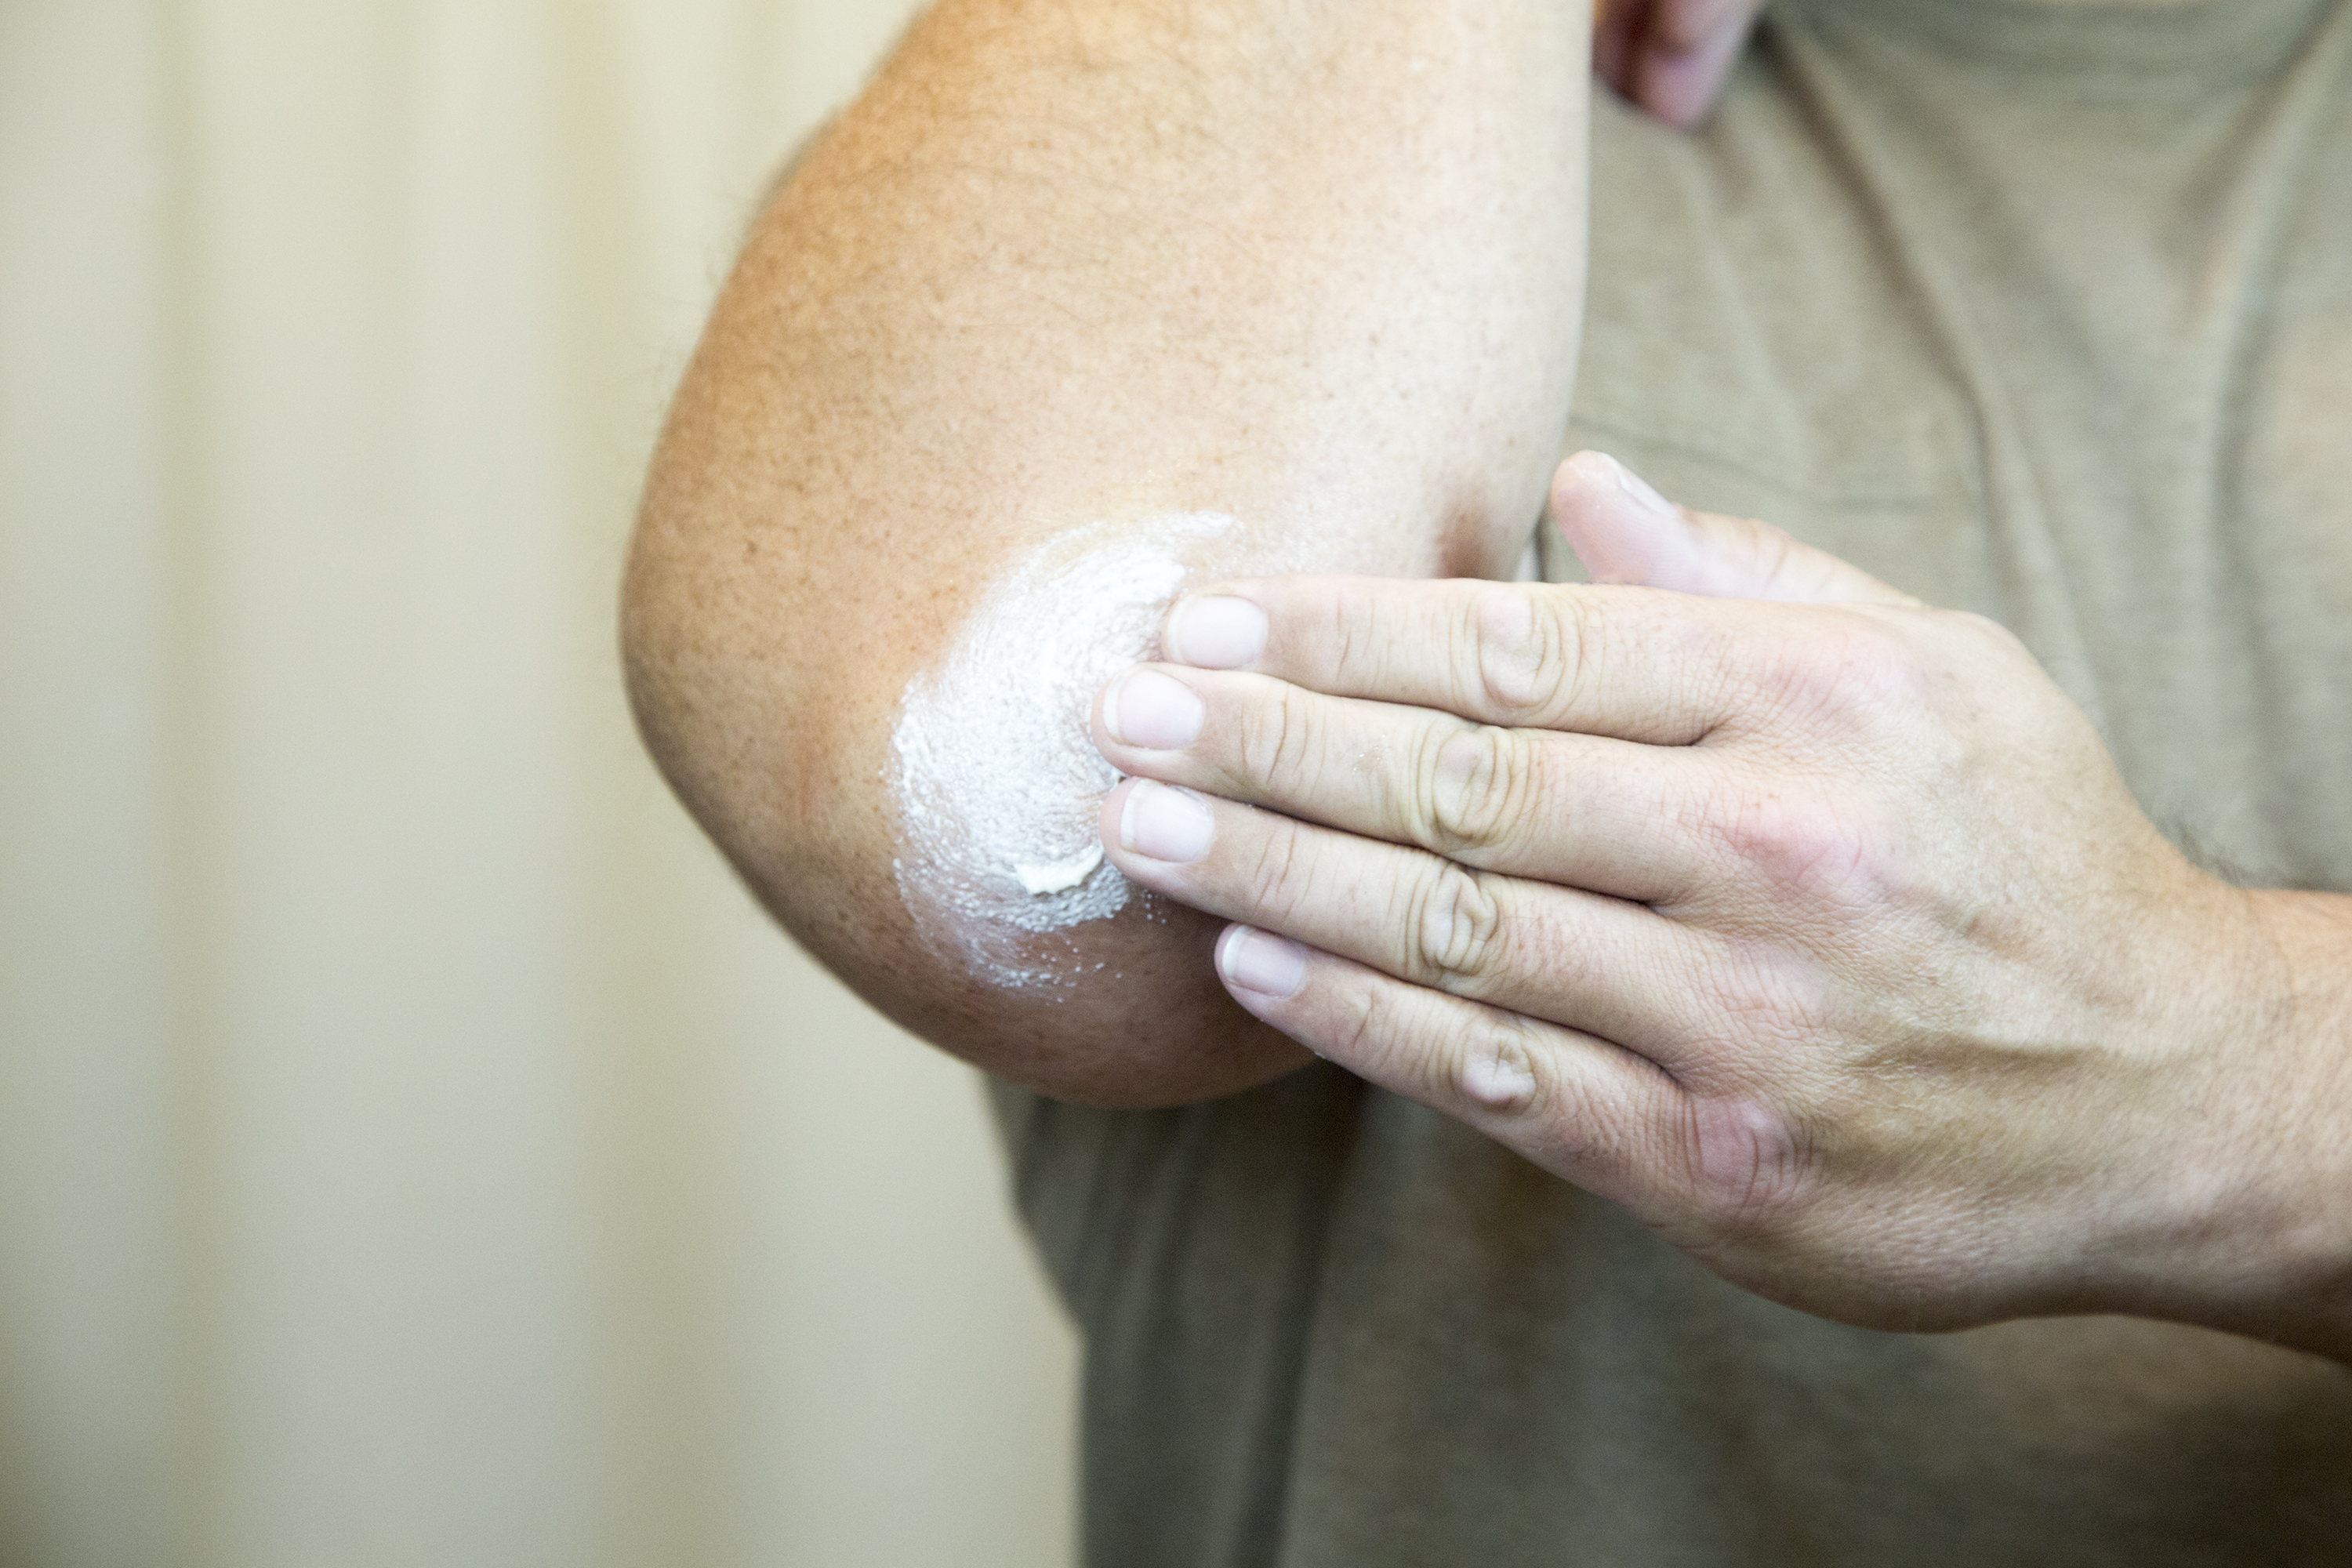 Dry skin can be rough, flaky, red, and sometimes painful